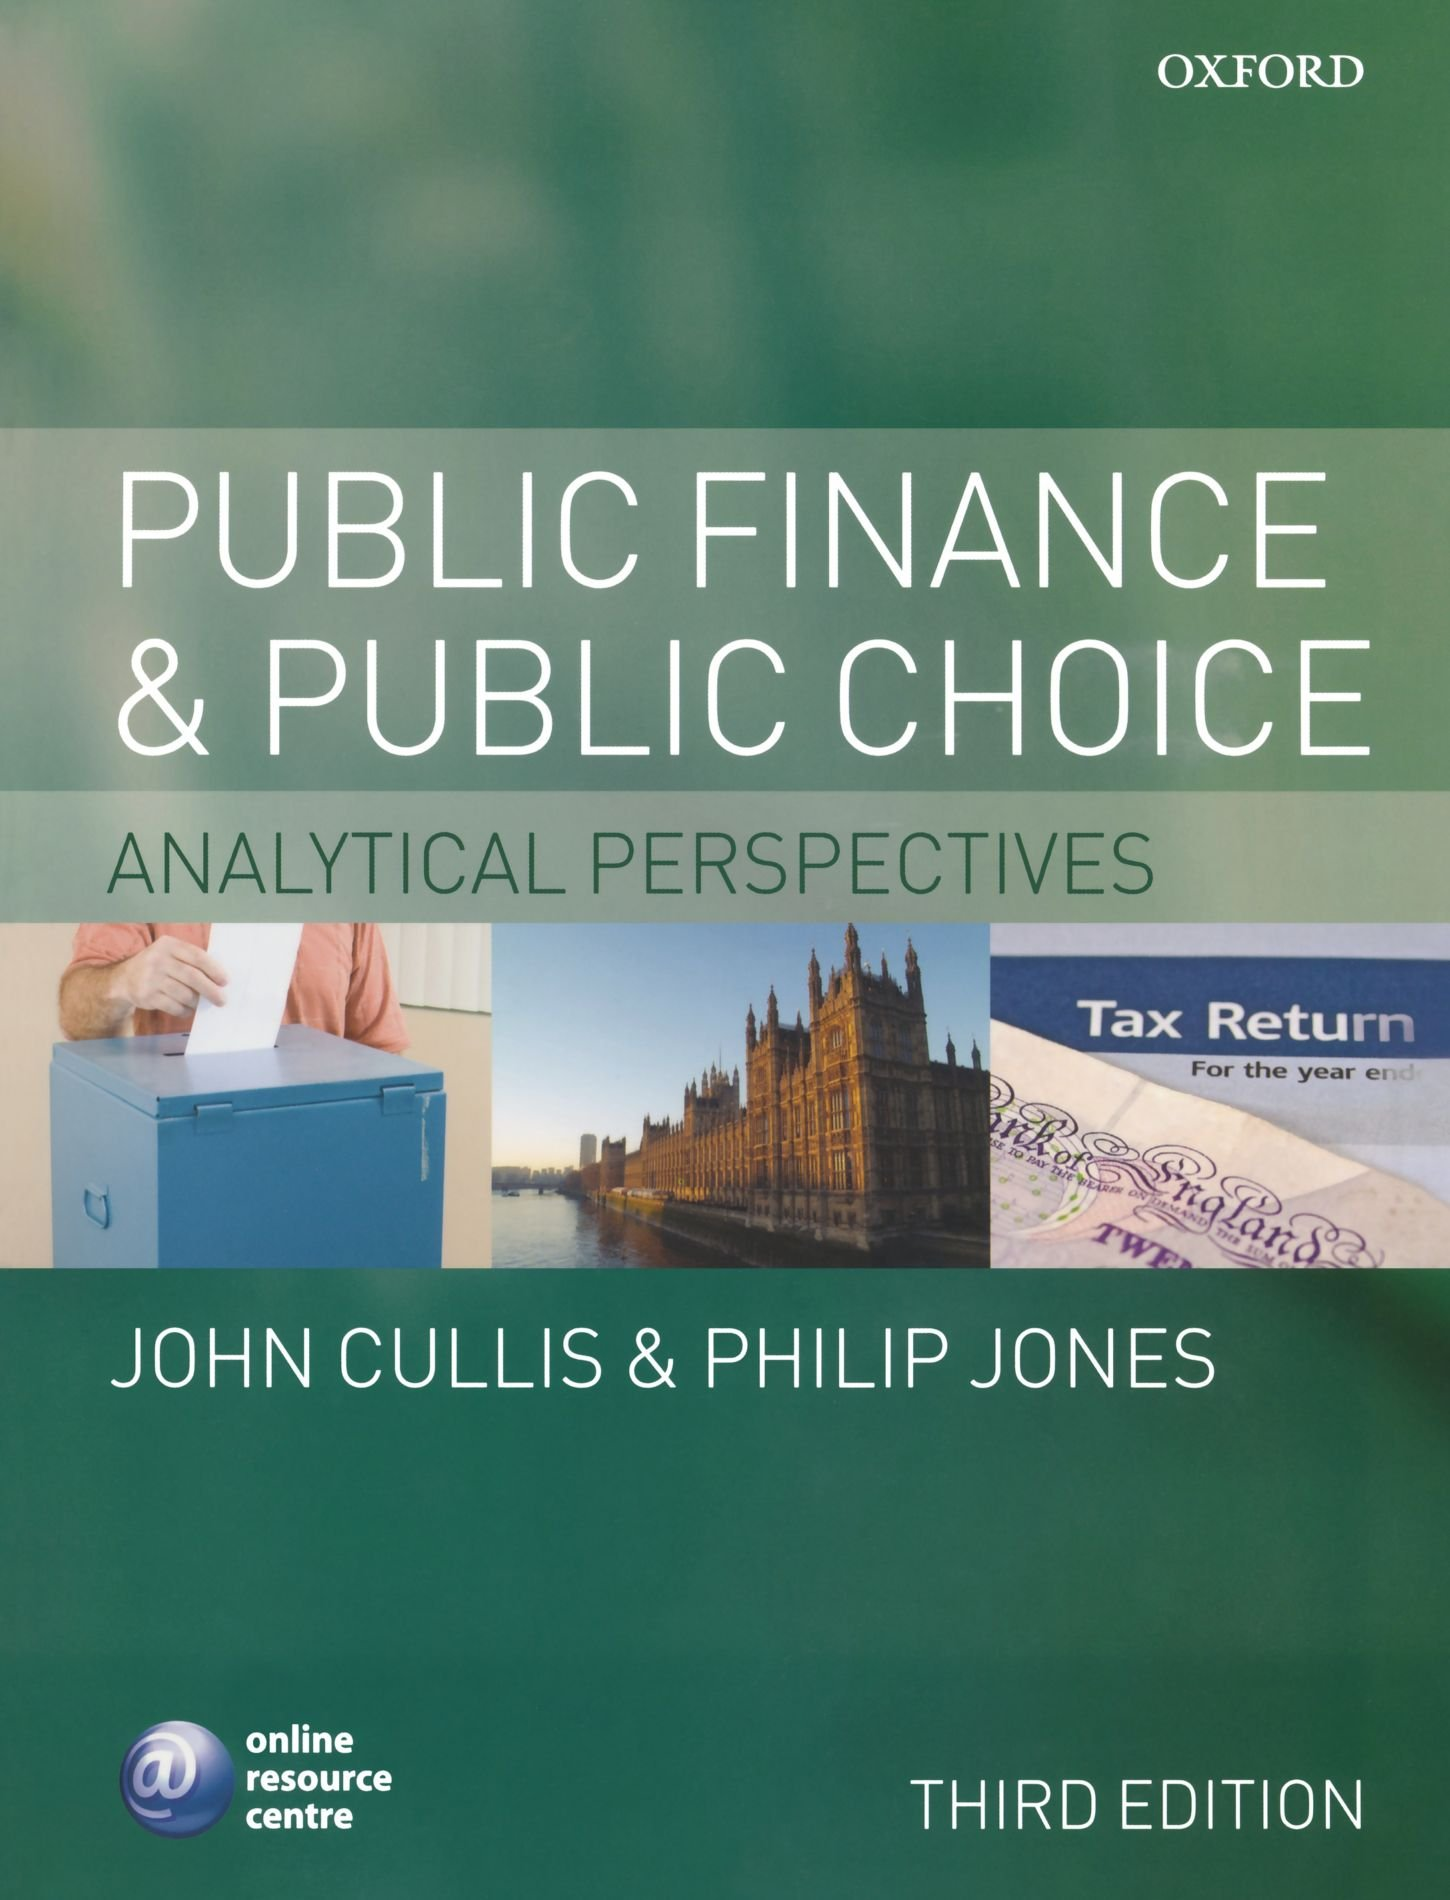 Public Finance and Public Choice: Analytical Perspectives by Oxford University Press